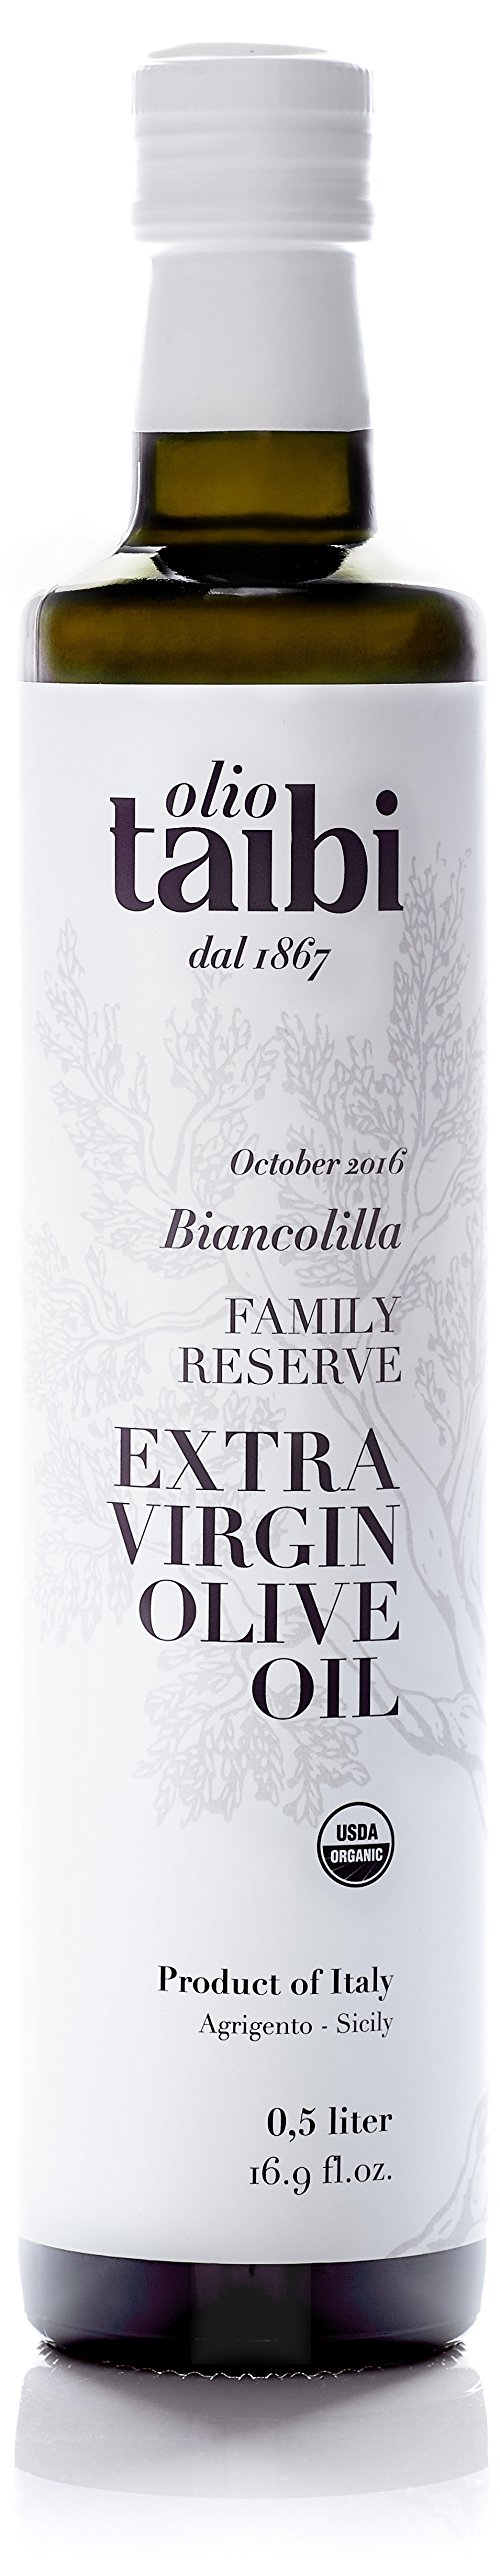 "NEW HARVEST OCTOBER 2017 Olio Taibi Award-Winning Organic Extra Virgin Olive Oil, Monocultivar ""Biancolilla"", Single Sourced Sicily, Italy, High Polyphenols, Unrefined, Large 16.9 Fl Oz"